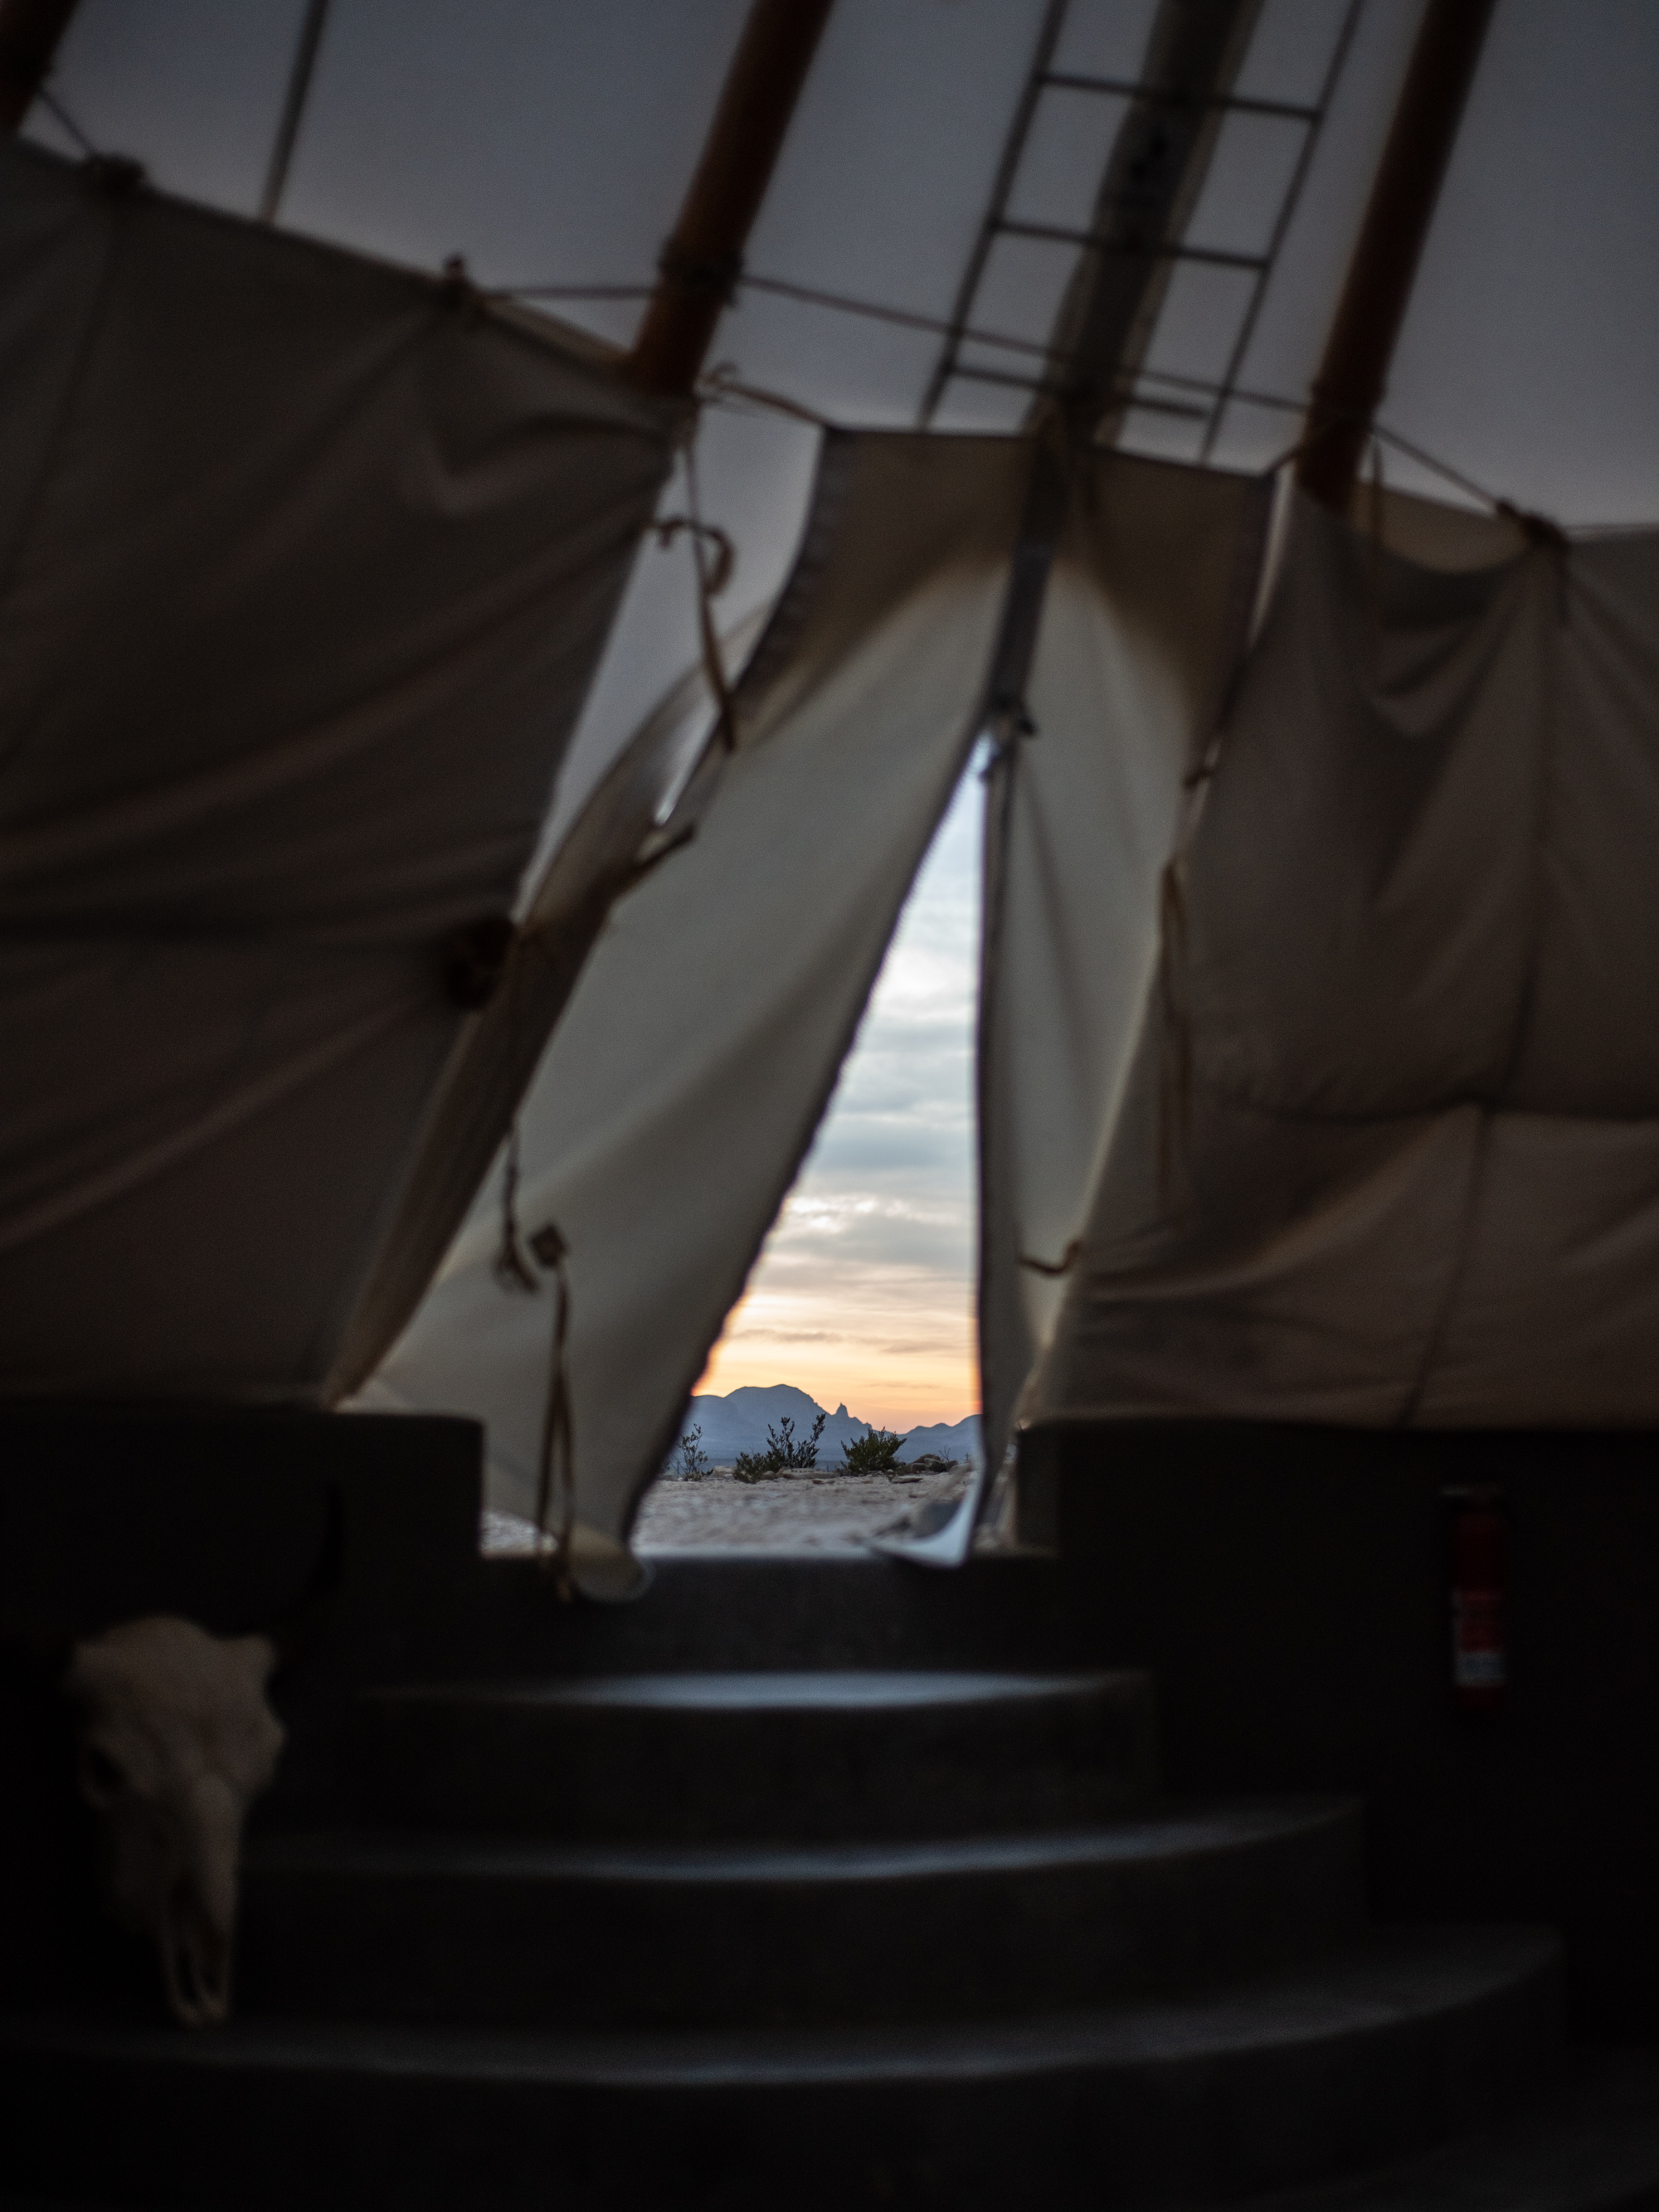 early morning in the teepee, terlingua, texas